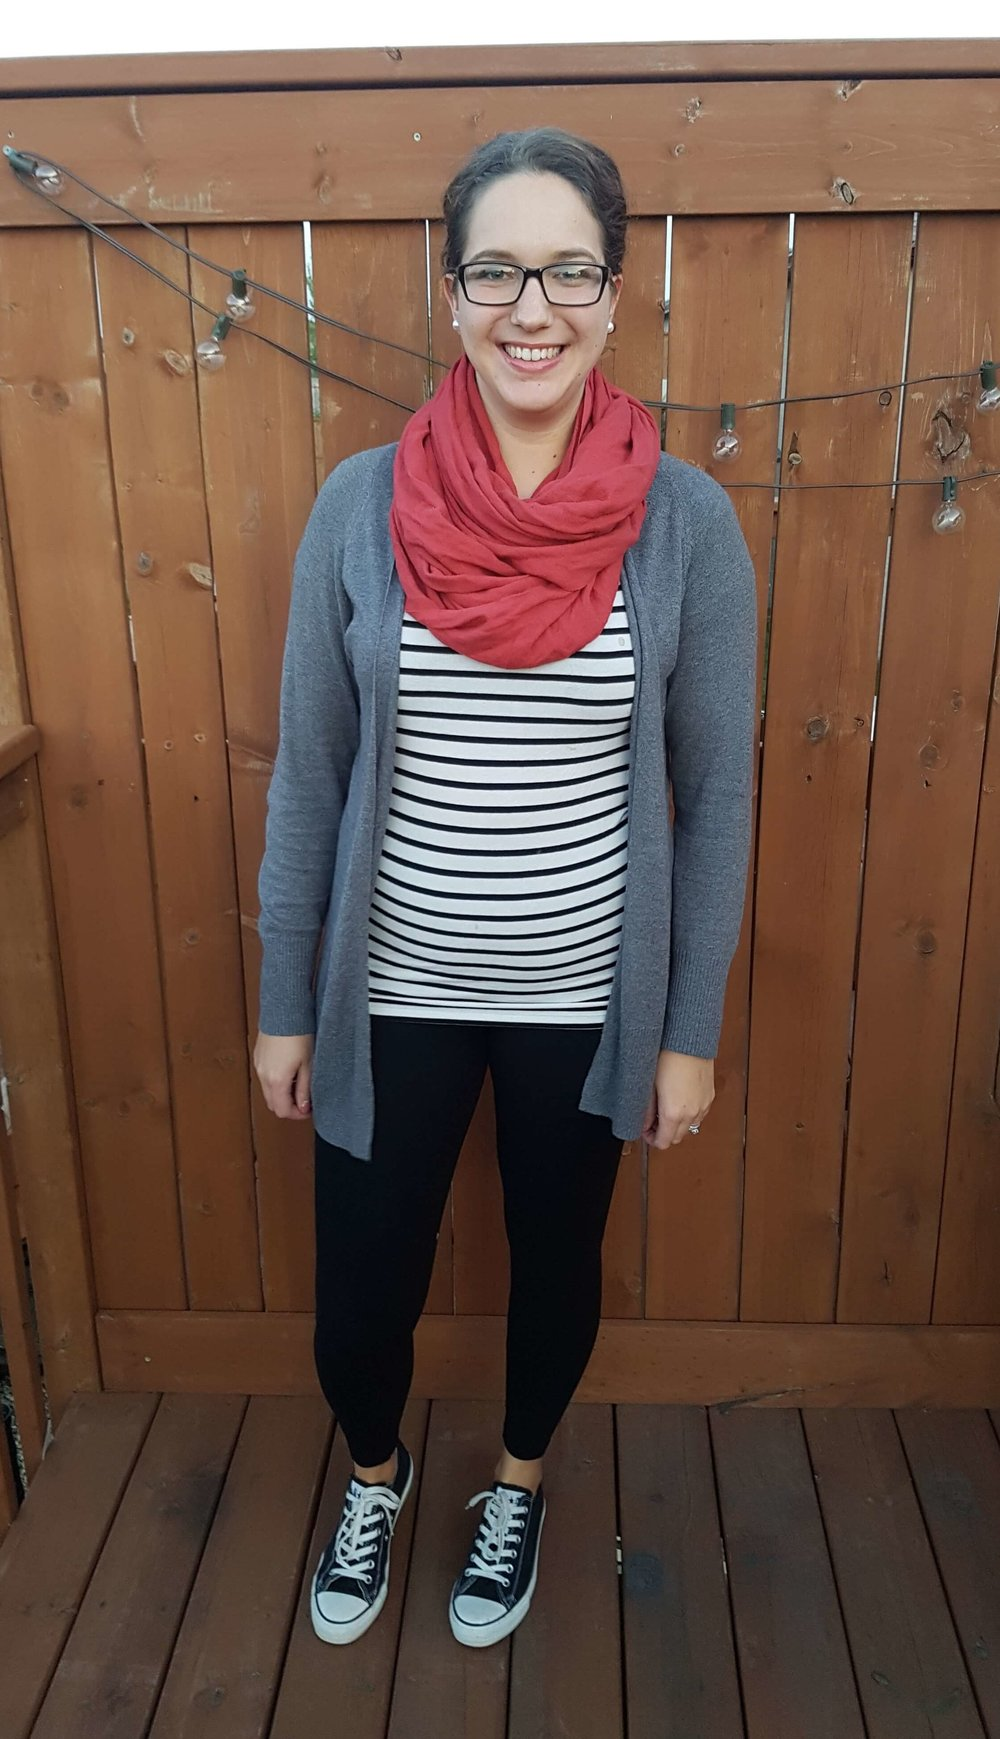 13f49c3a88 How to Wear Leggings Without Looking Frumpy (15+ Outfit Ideas ...